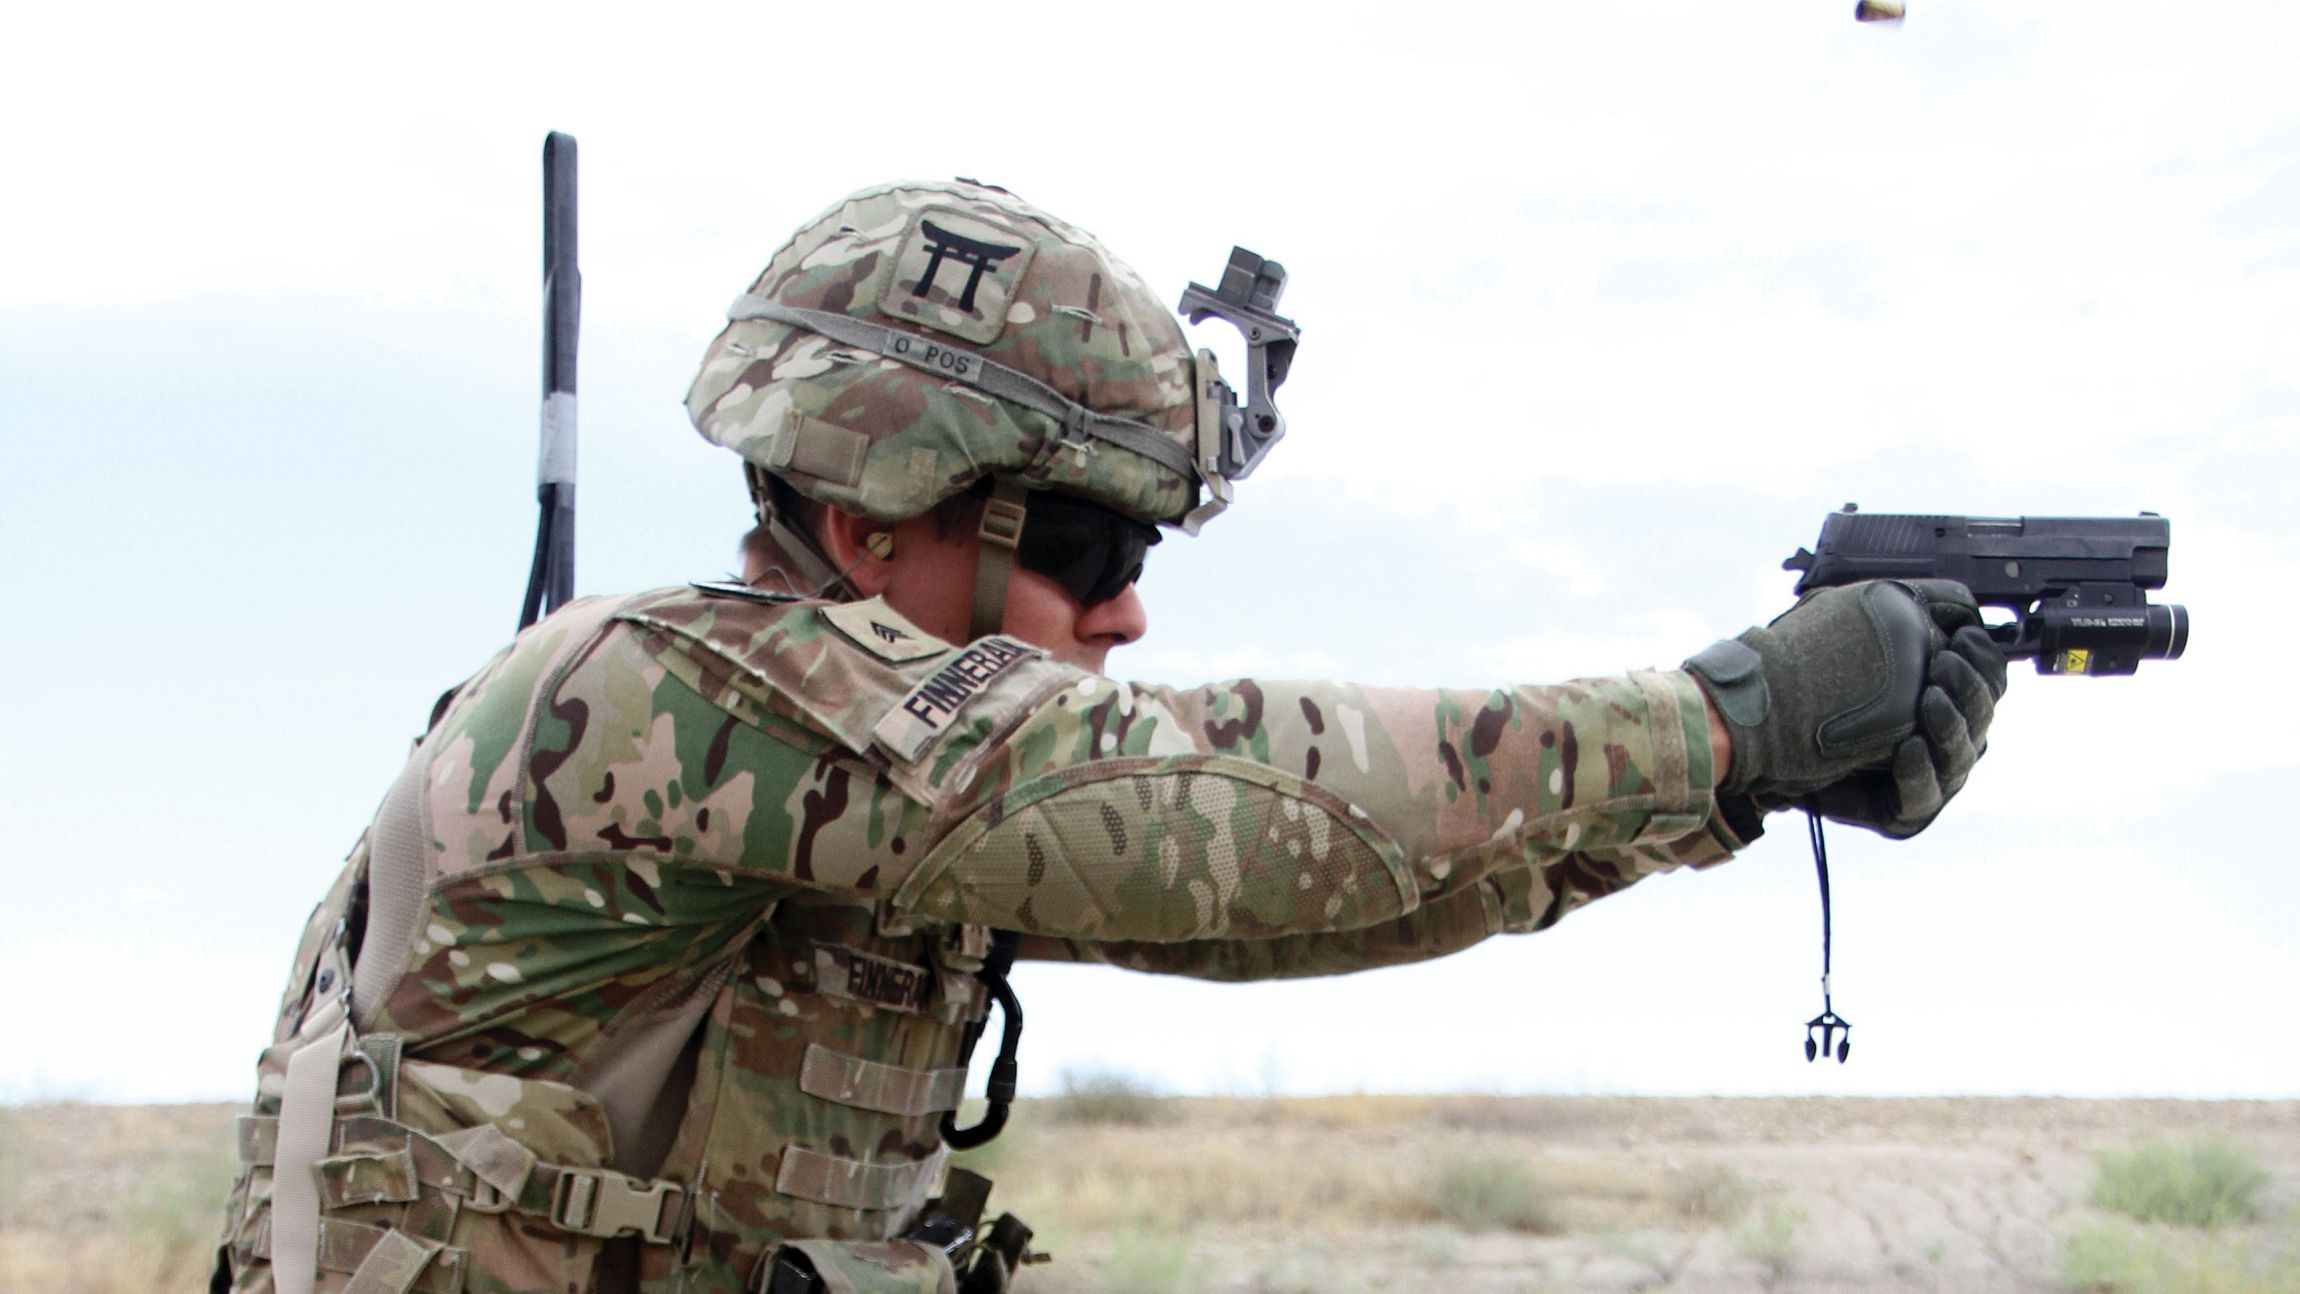 Partnered Marksmanship Training In Eastern Afghanistan